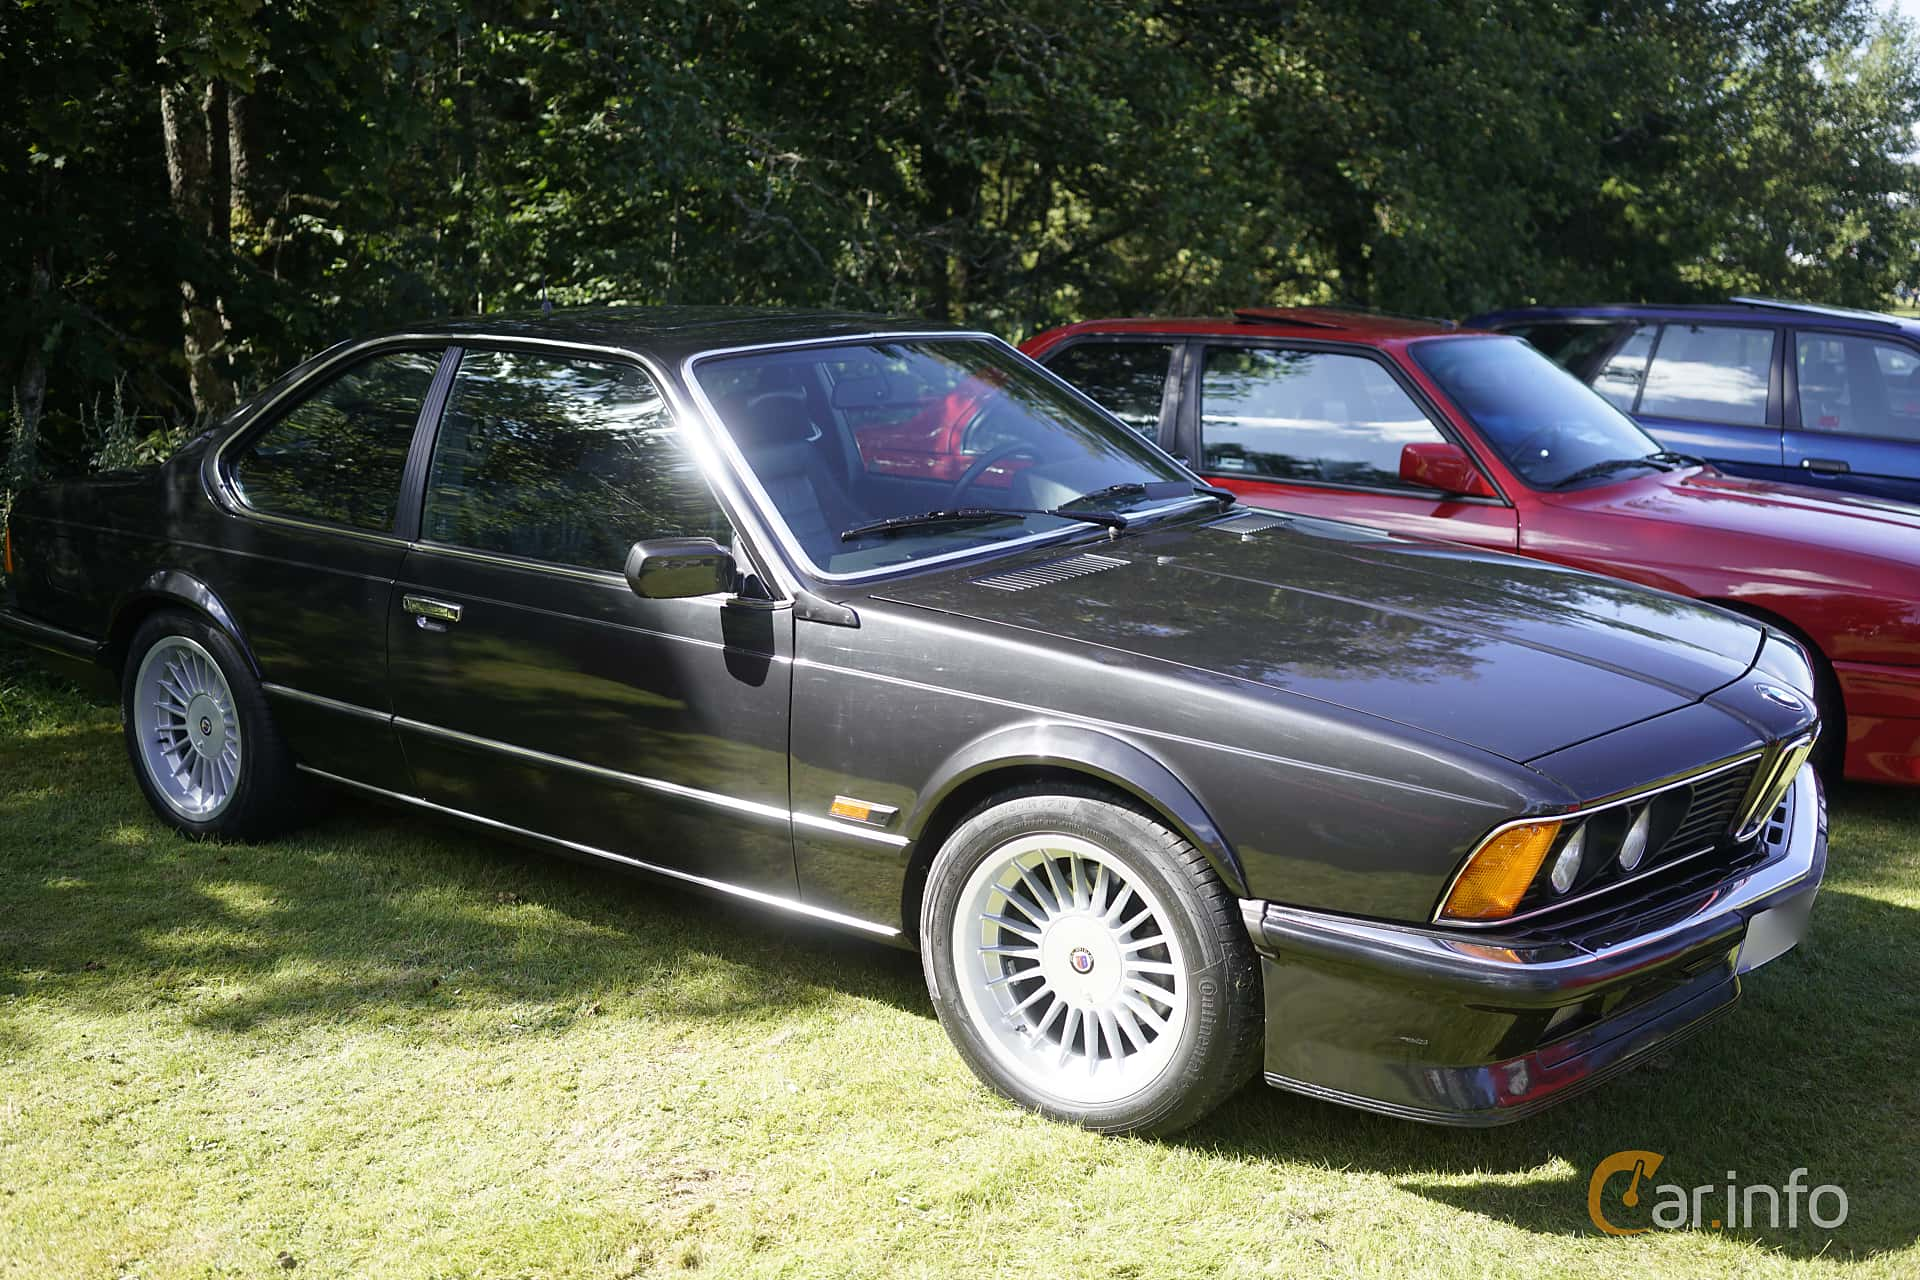 BMW M635CSi  Manual, 286hp, 1984 at Anderstorp Sportbilsfestival 2017